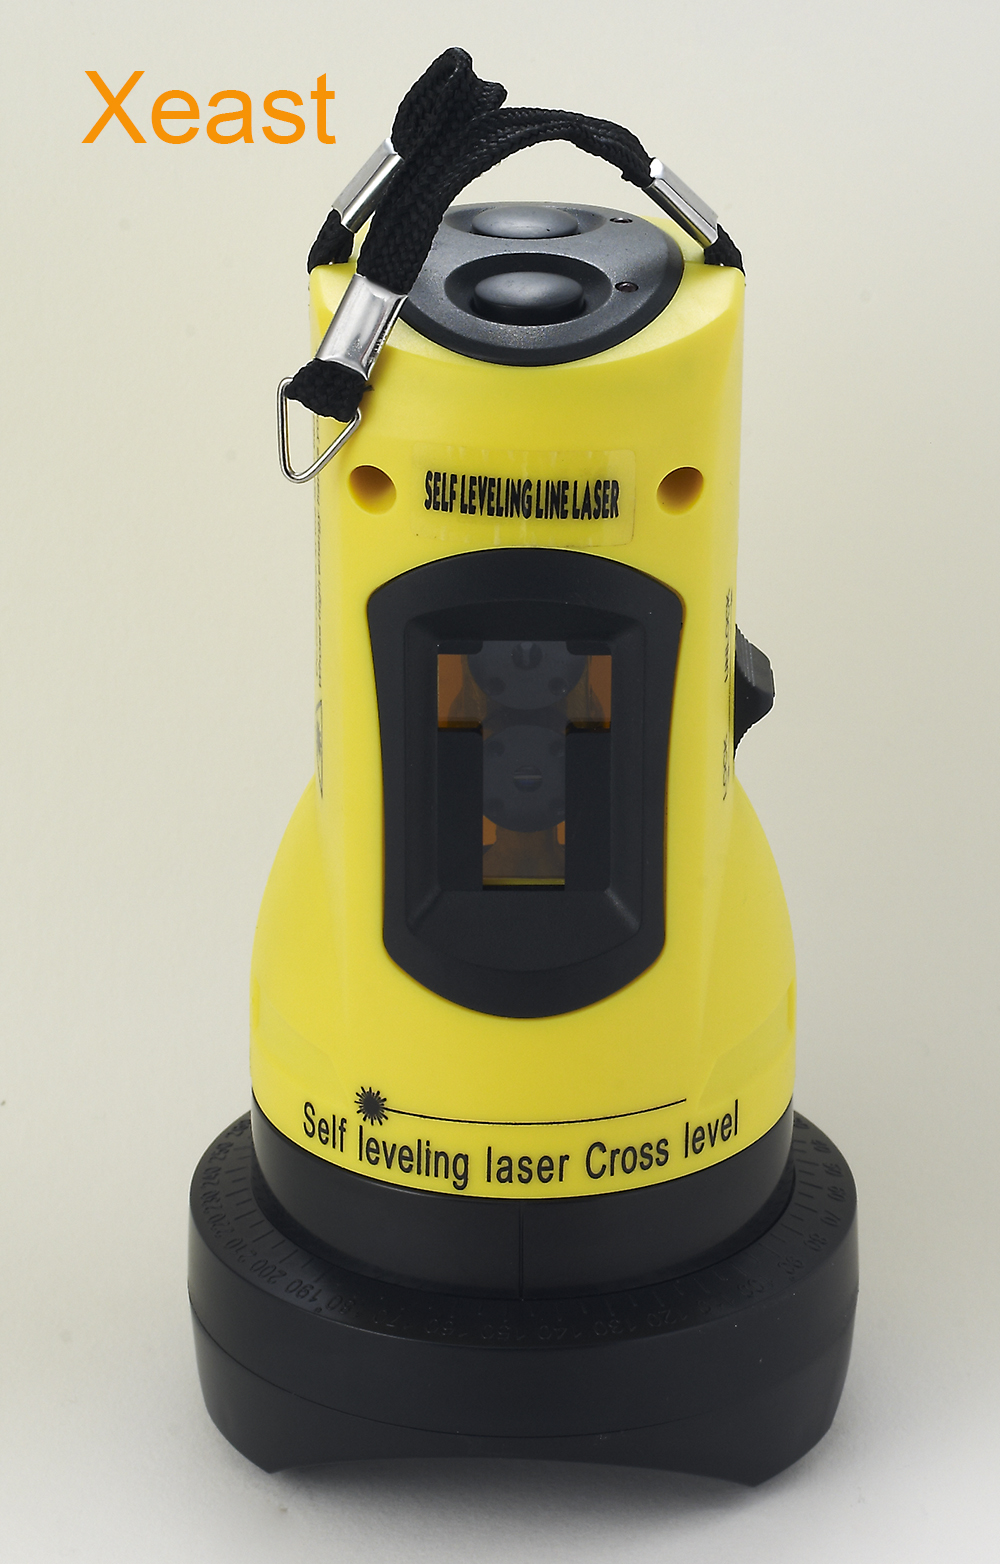 New Professional 2 lines laser level 360 rotary cross laser line leveling can be used with outdoor receiver